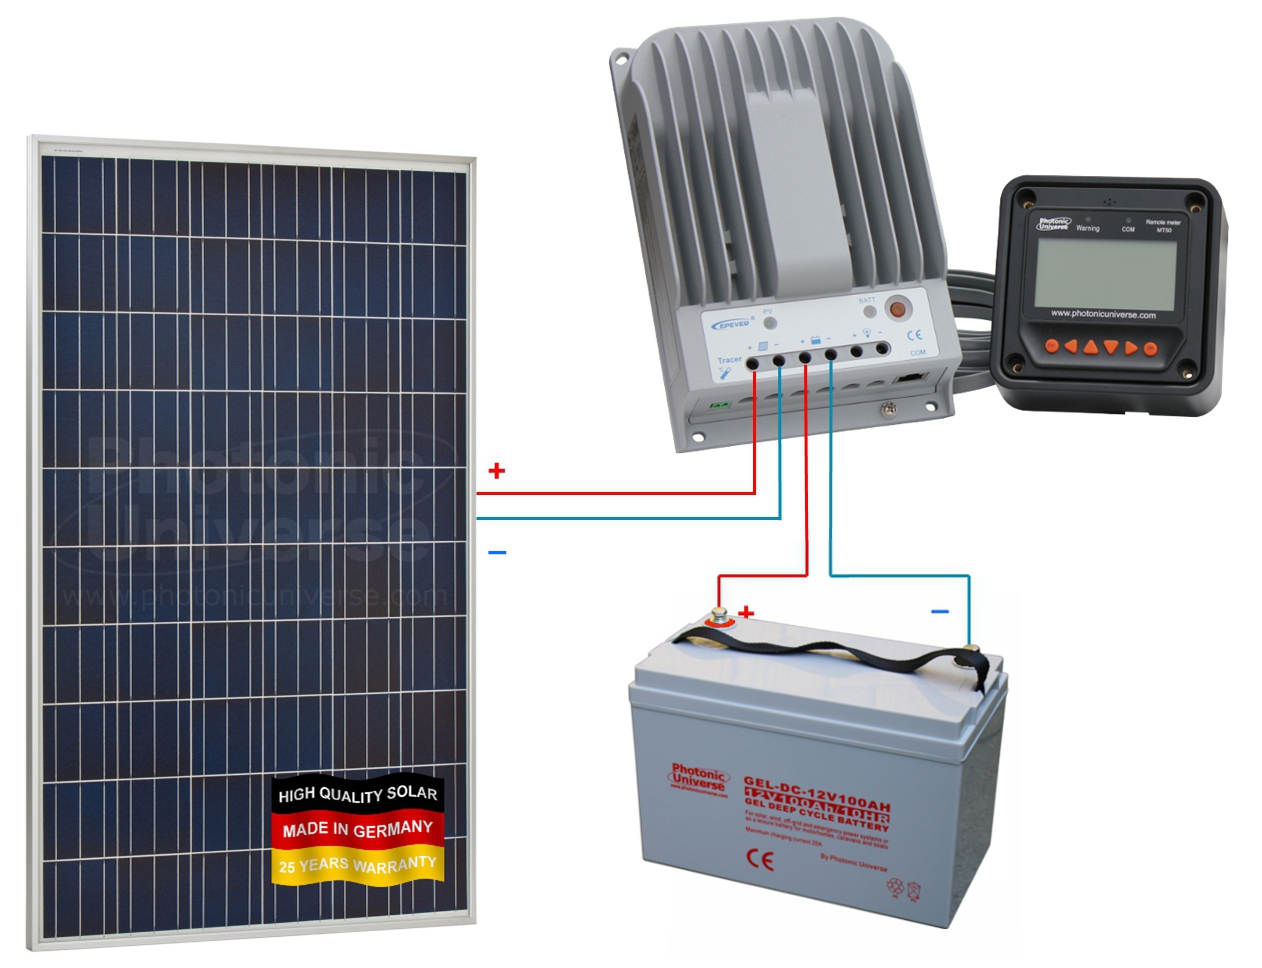 Connection scheme for 275W 12V/24V Photonic Universe solar charging kit